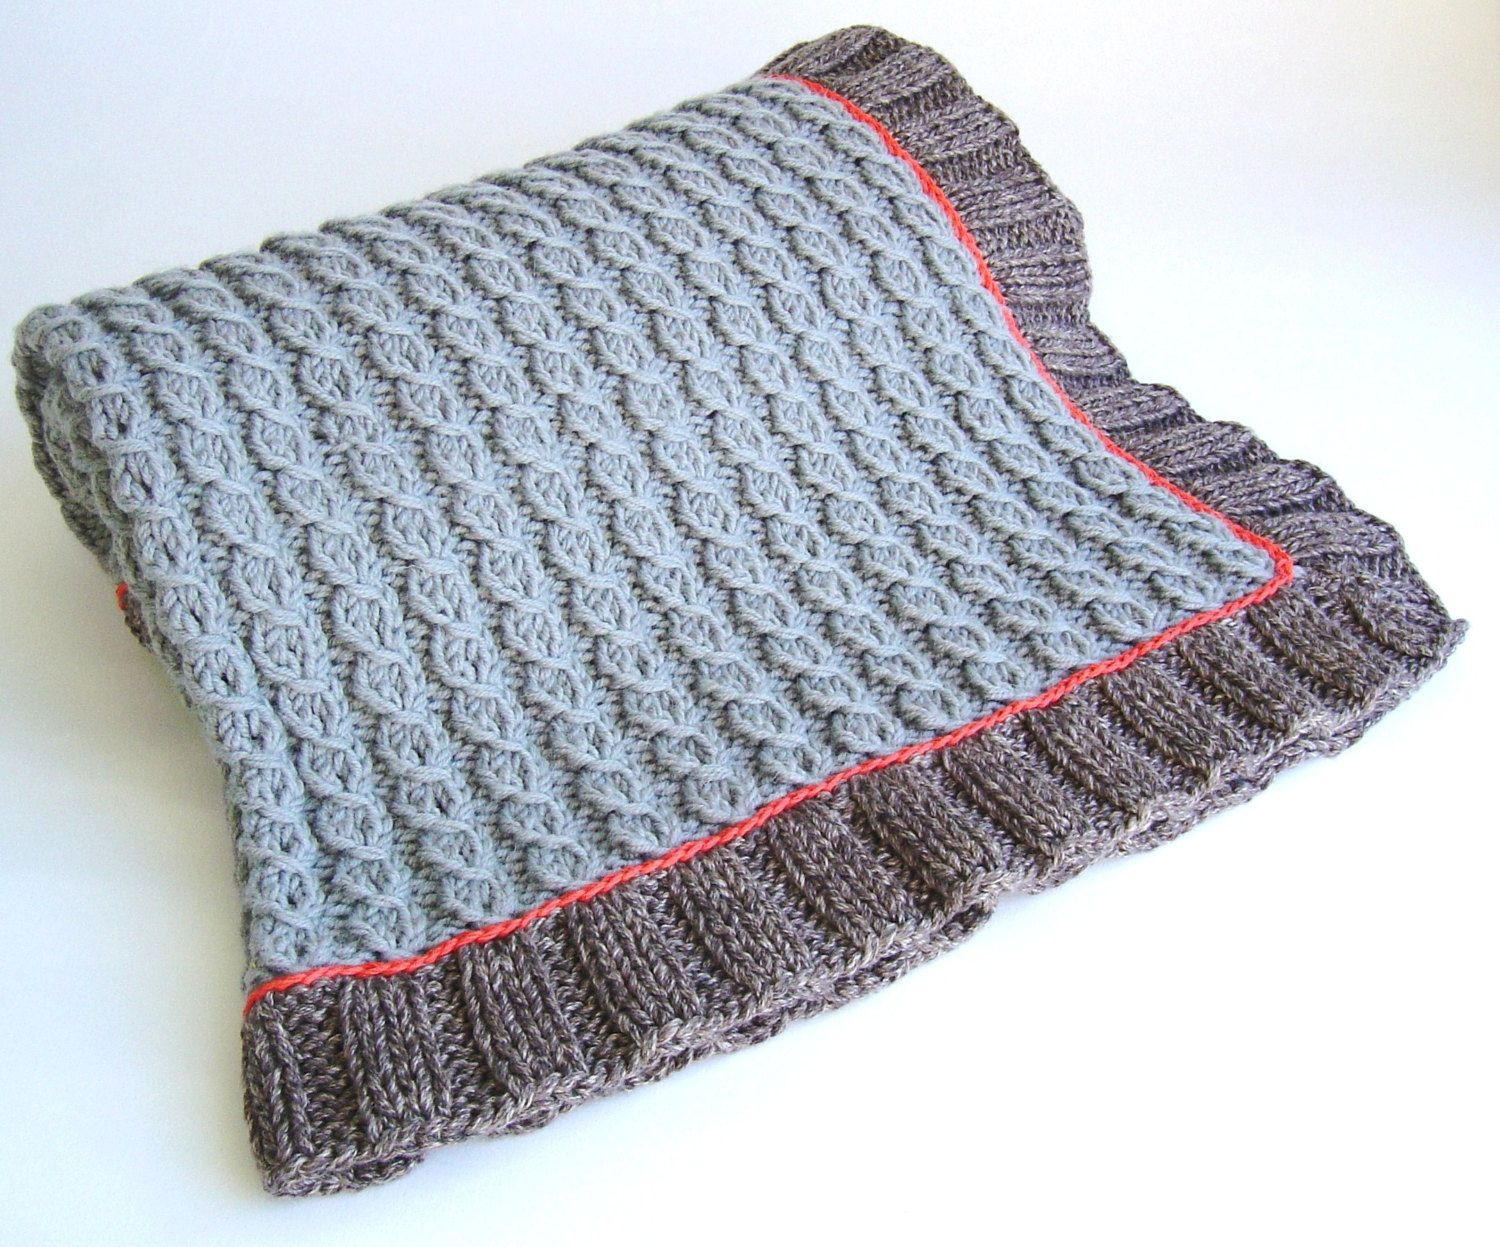 Knitting PATTERN Mock Cable Baby Blanket Easy Knit Lap Blanket ...